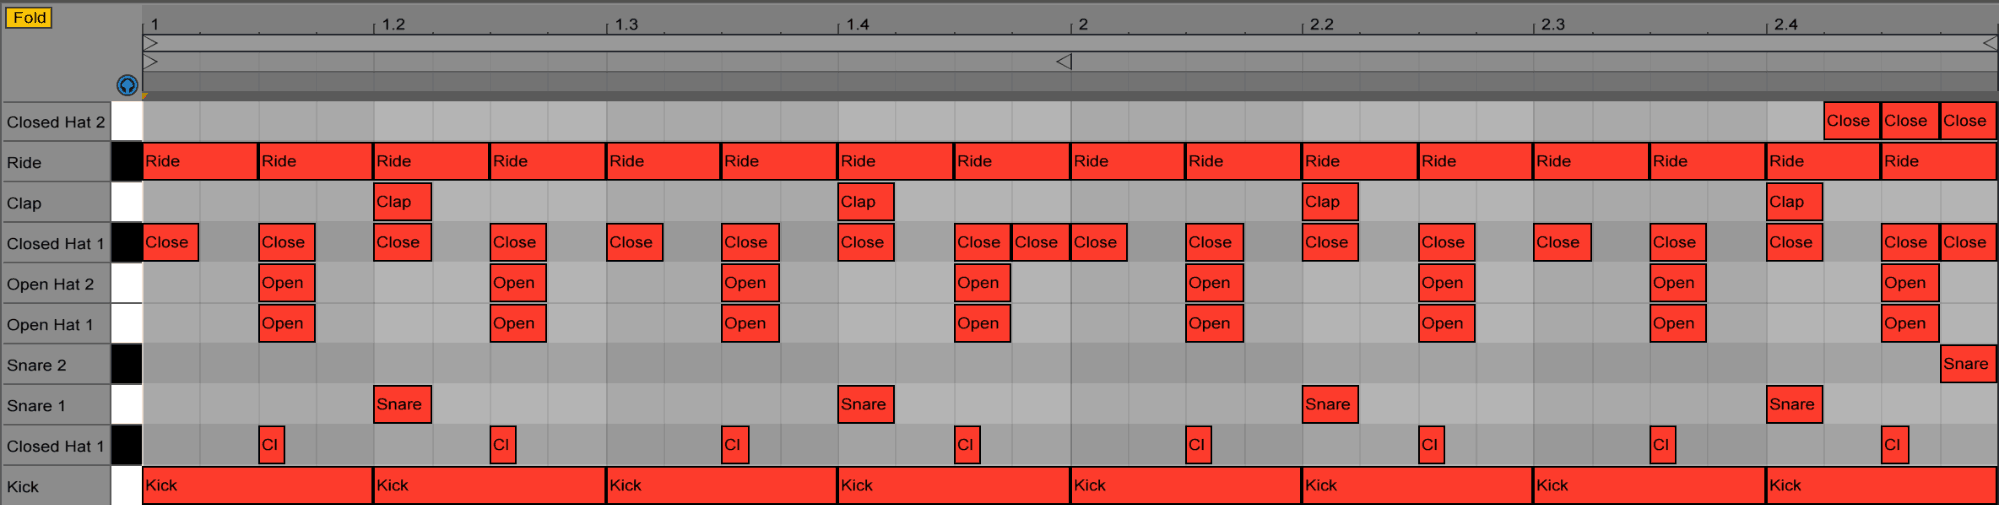 The ultimate guide to drum programming edmprod for Zenhiser classic house drum sounds